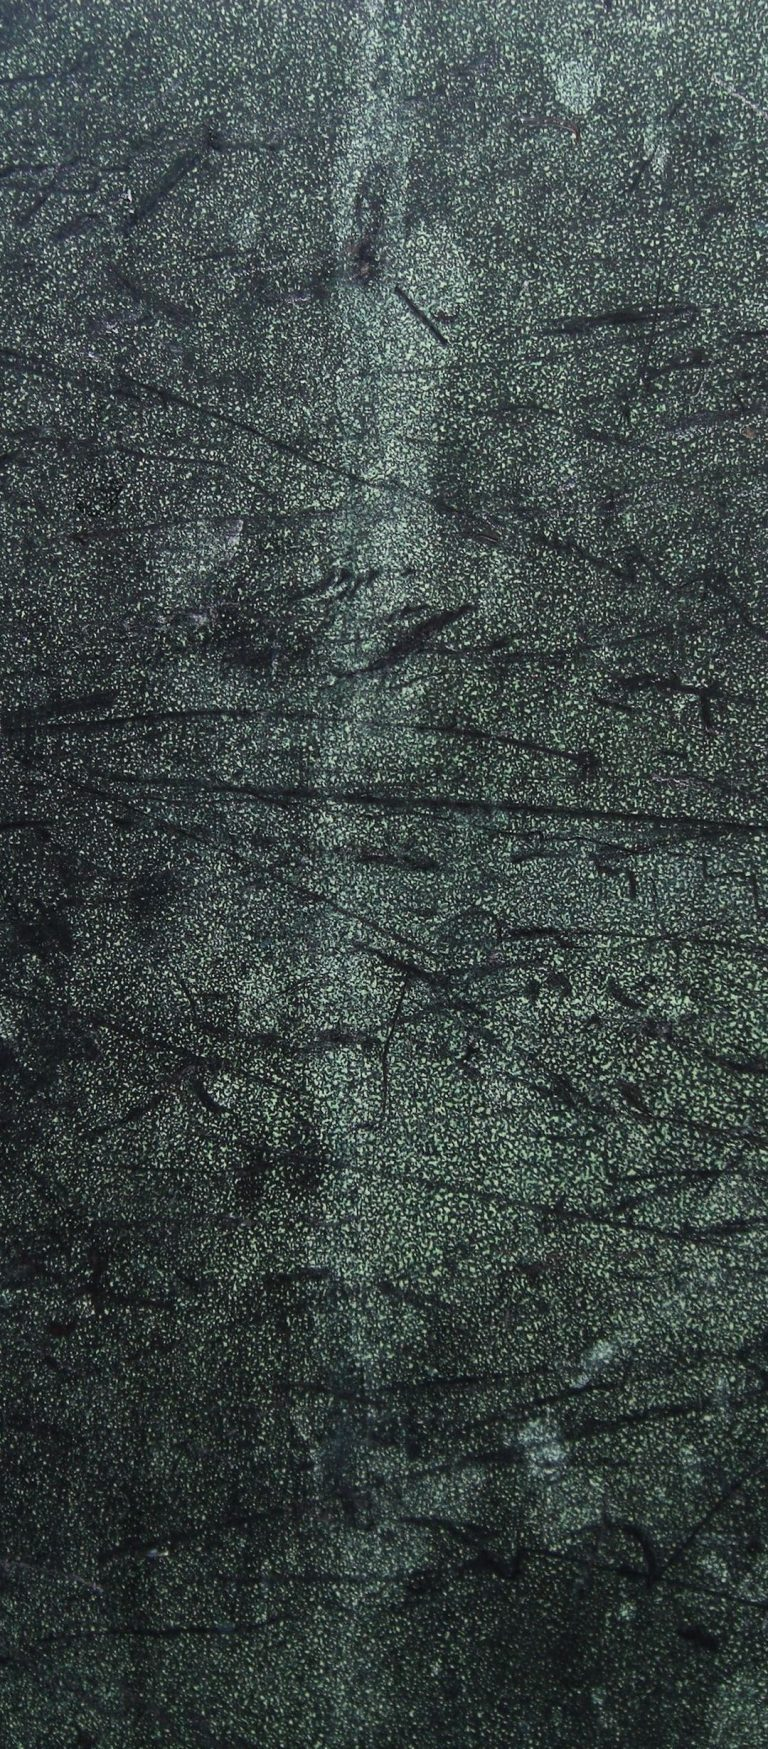 Surface Scratches Background Texture 1080x2460 768x1749